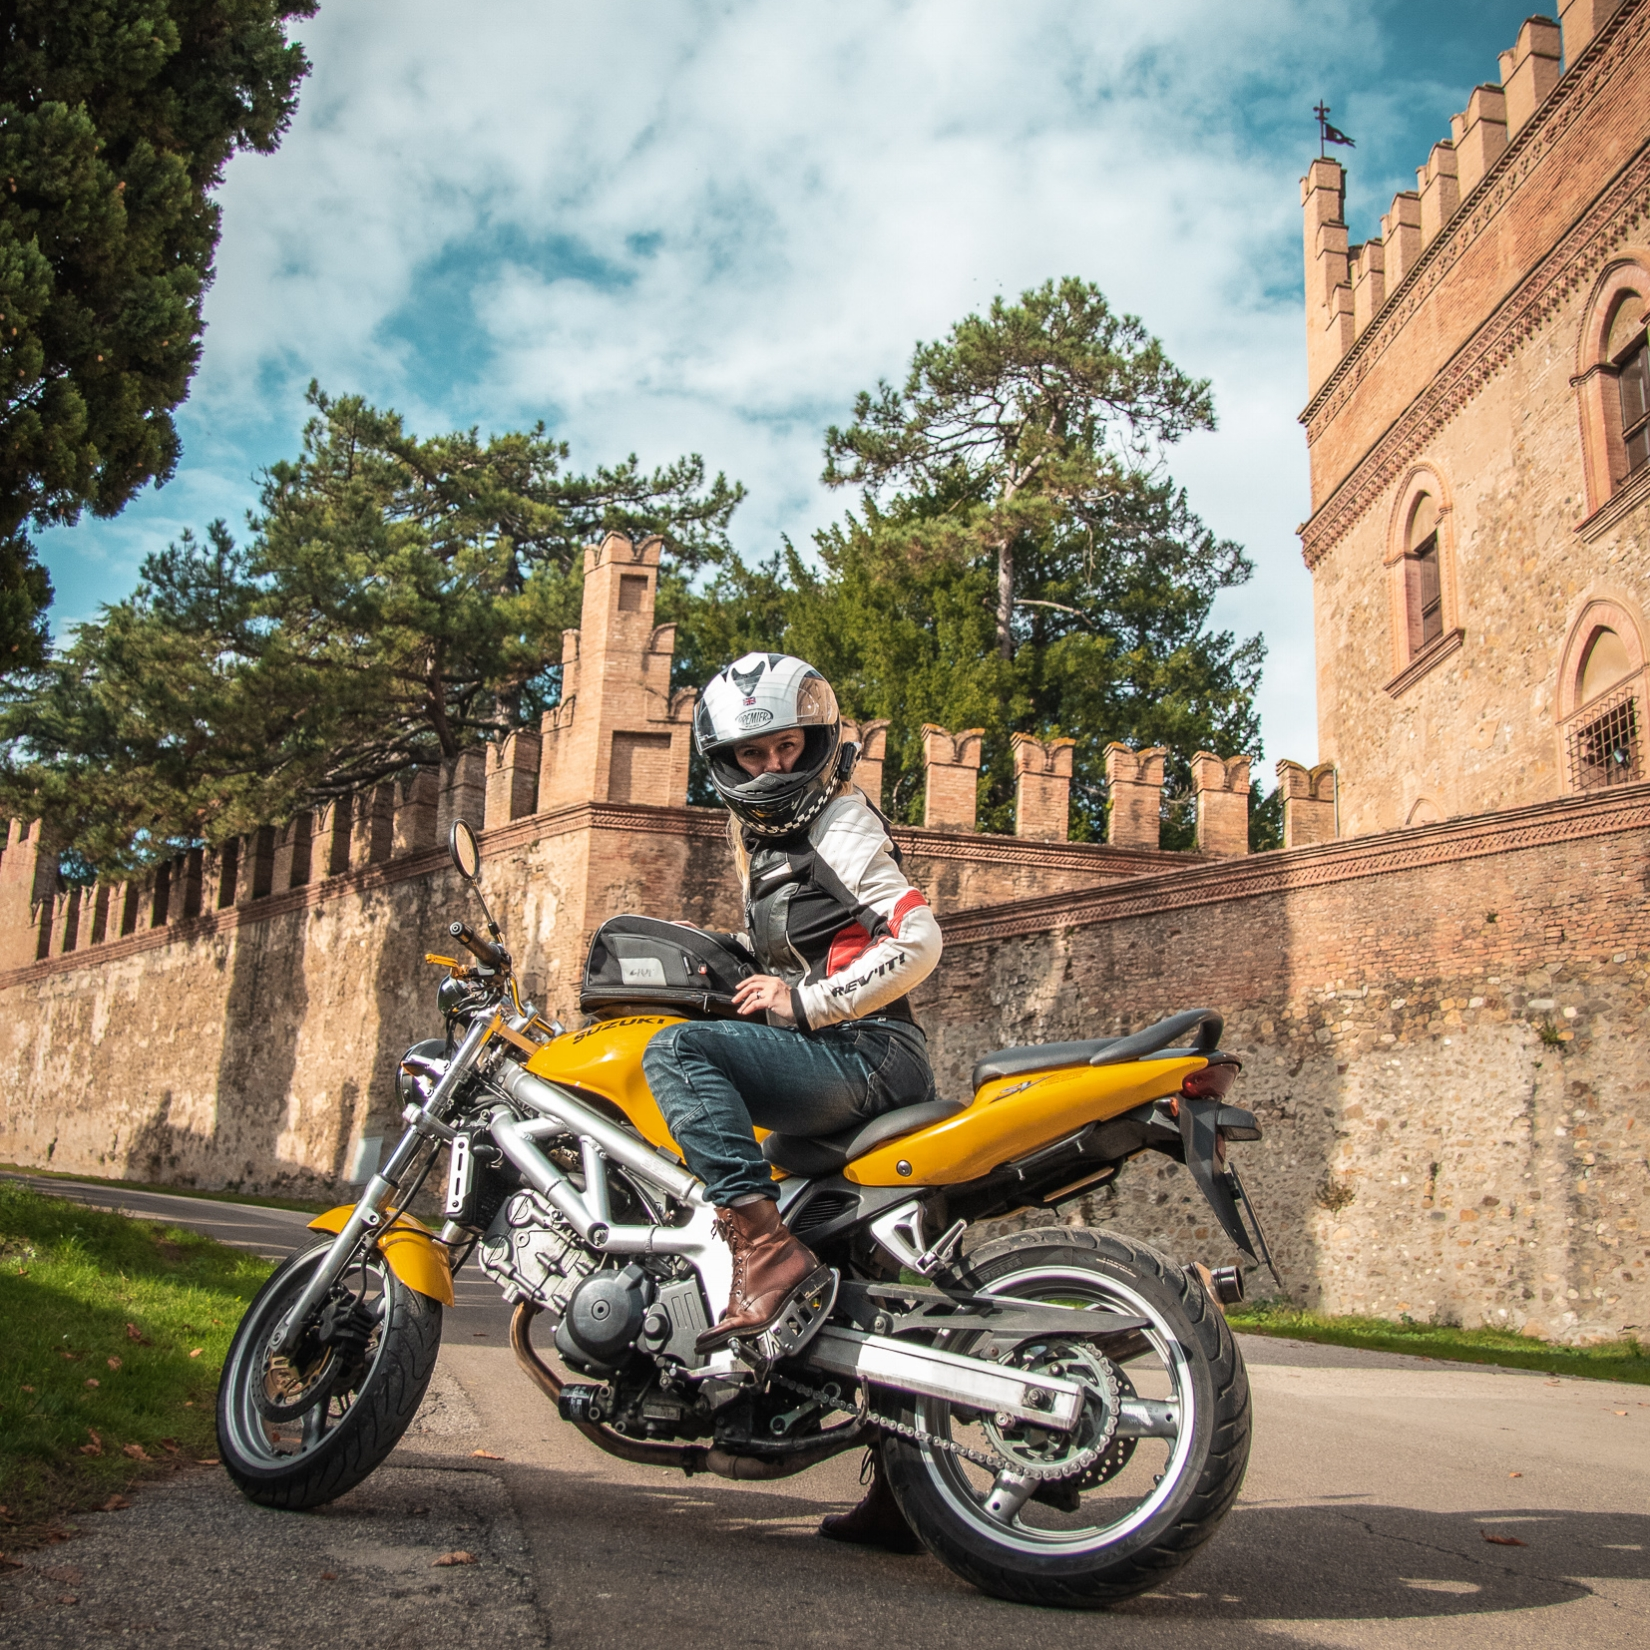 28f0437aad42 How to Motorcycle · Leveling up: tips that will make you a better rider  instantly. Part 1